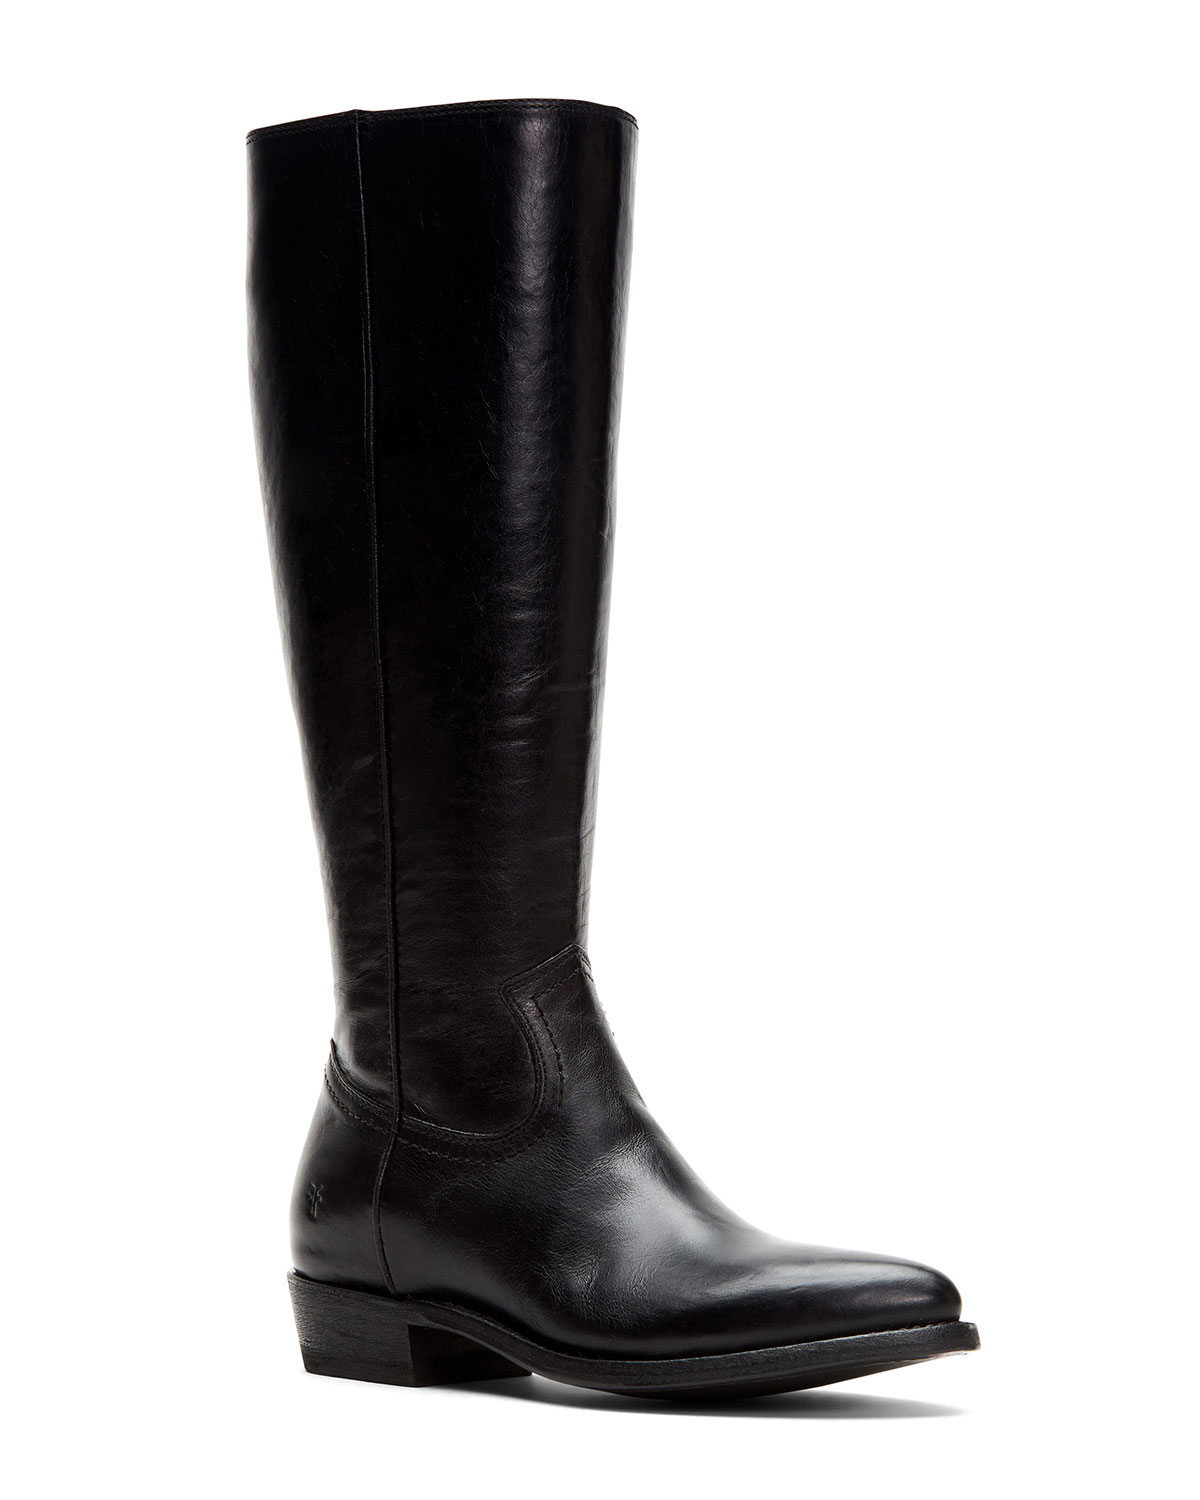 Frye Boots BILLY TALL LEATHER WESTERN BOOTS